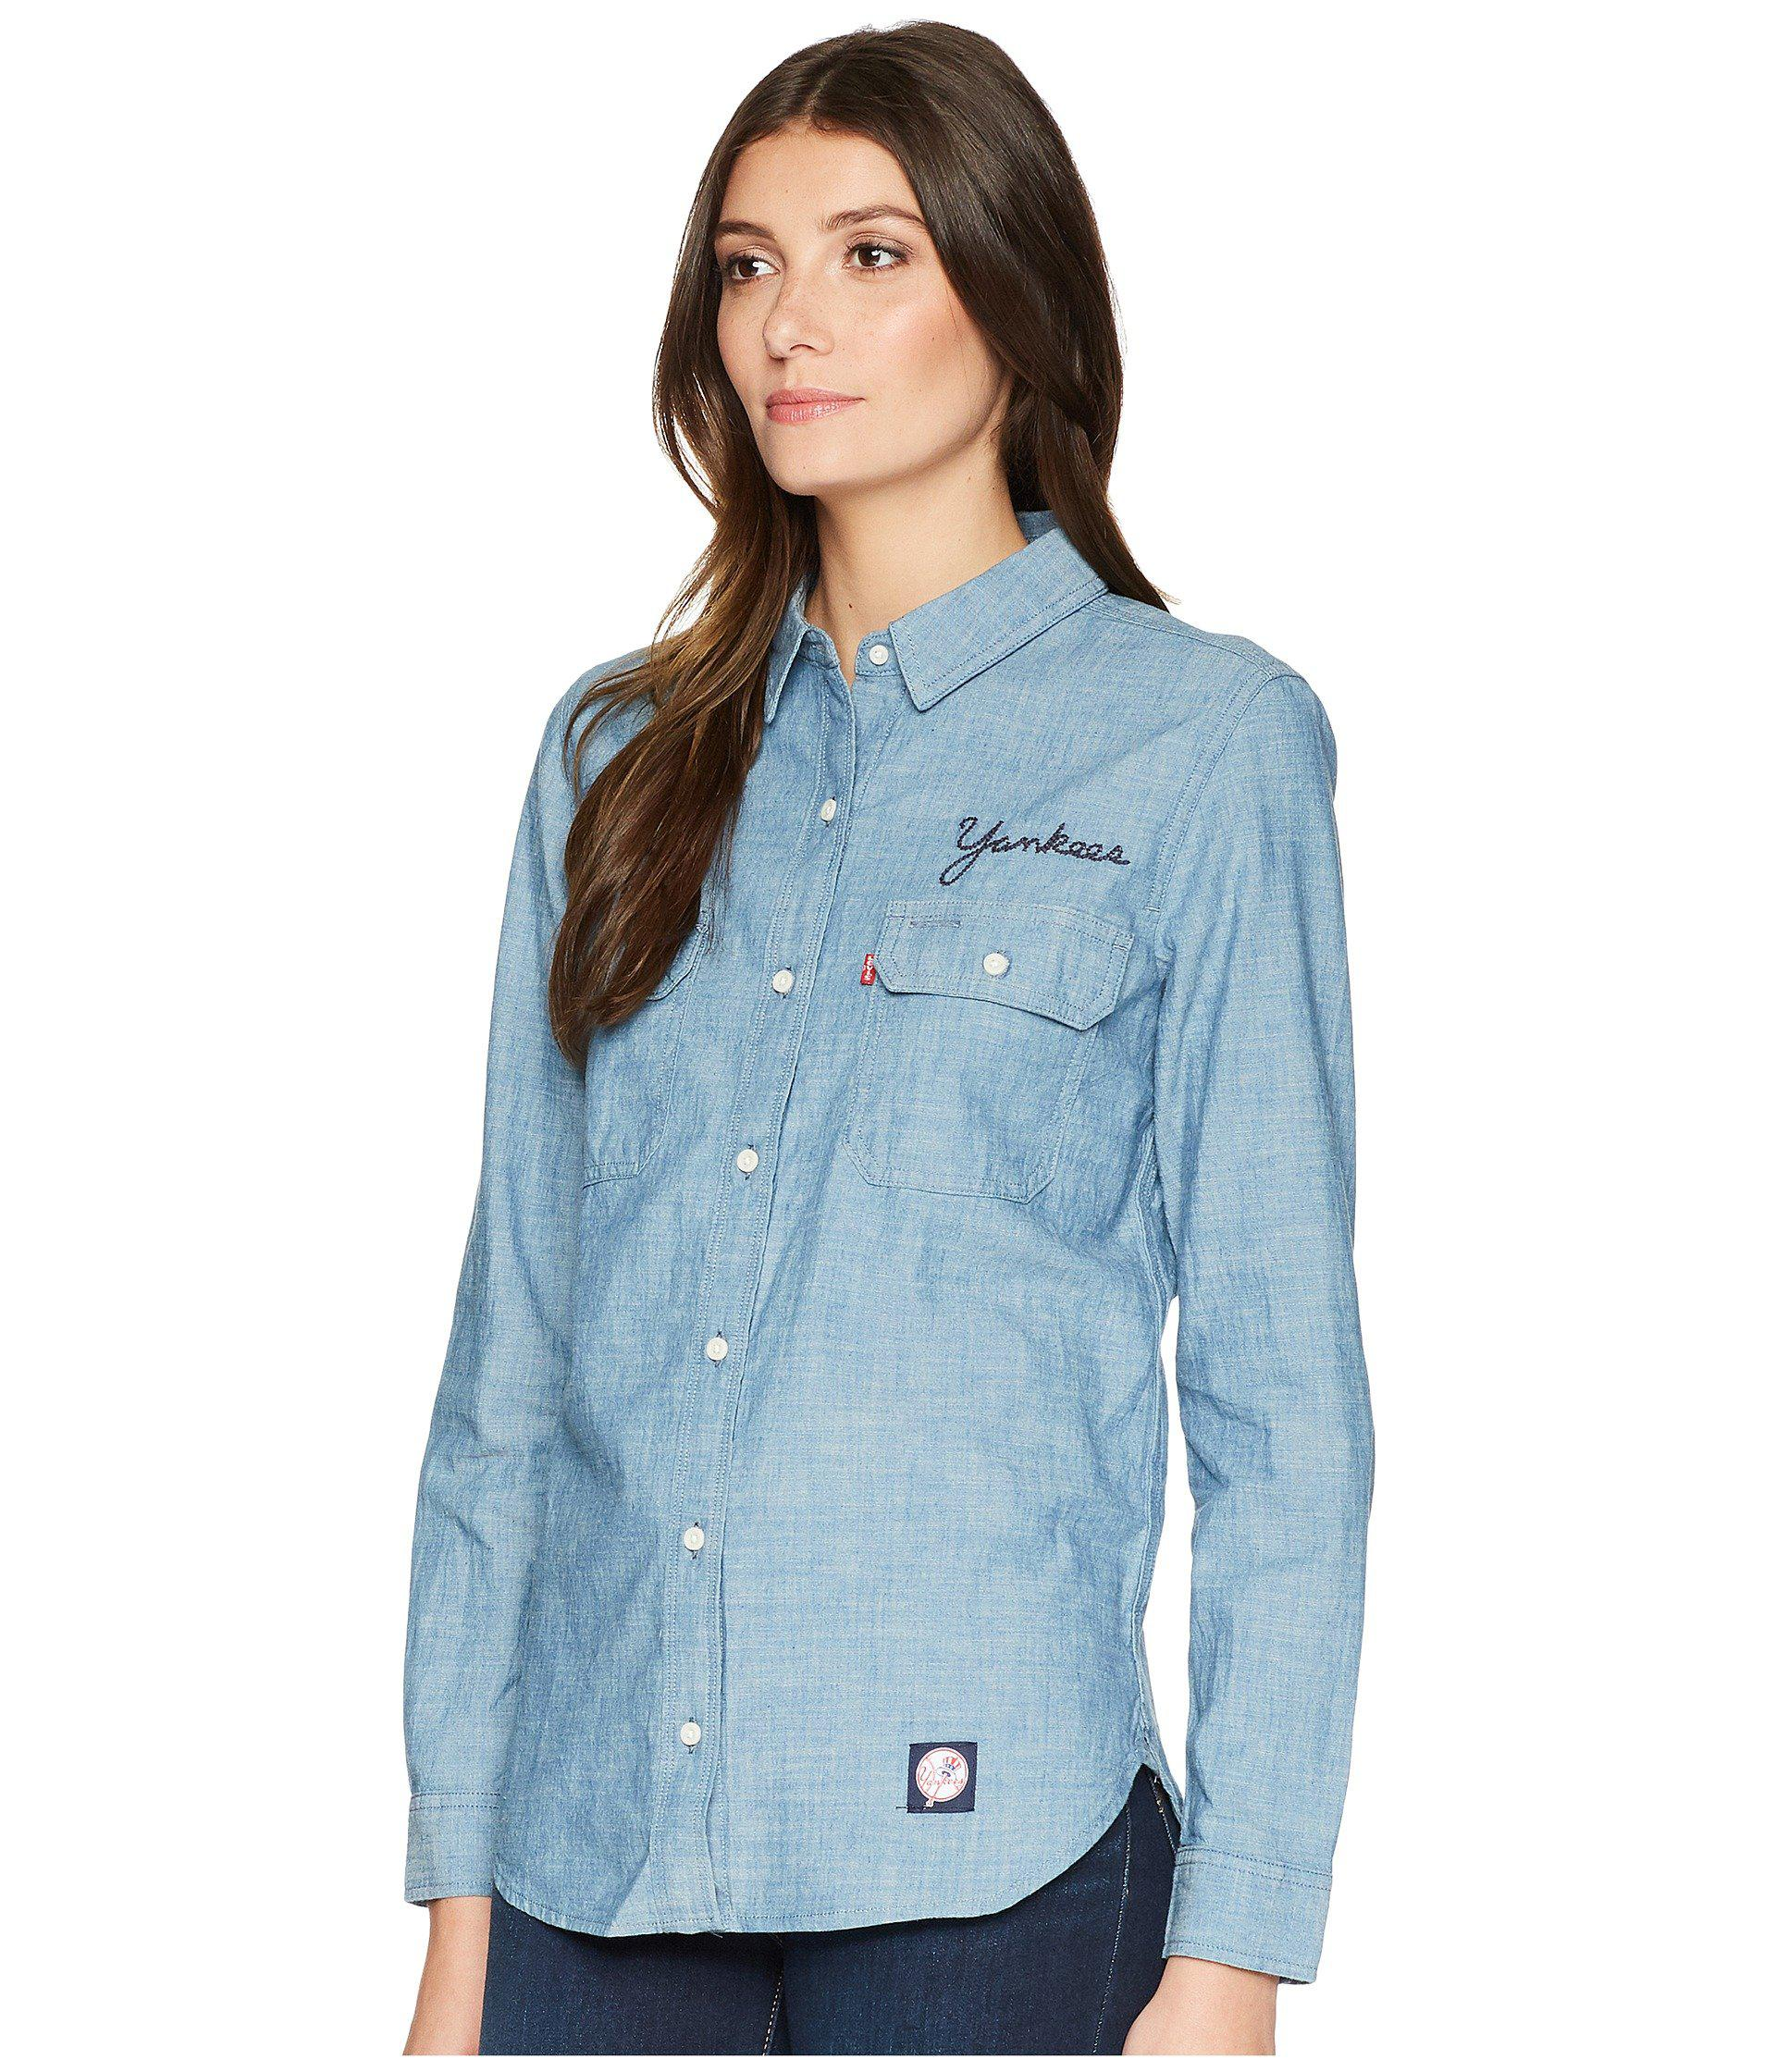 ef79e32901 Lyst - Levi s New York Yankees Chambray Shirt in Blue